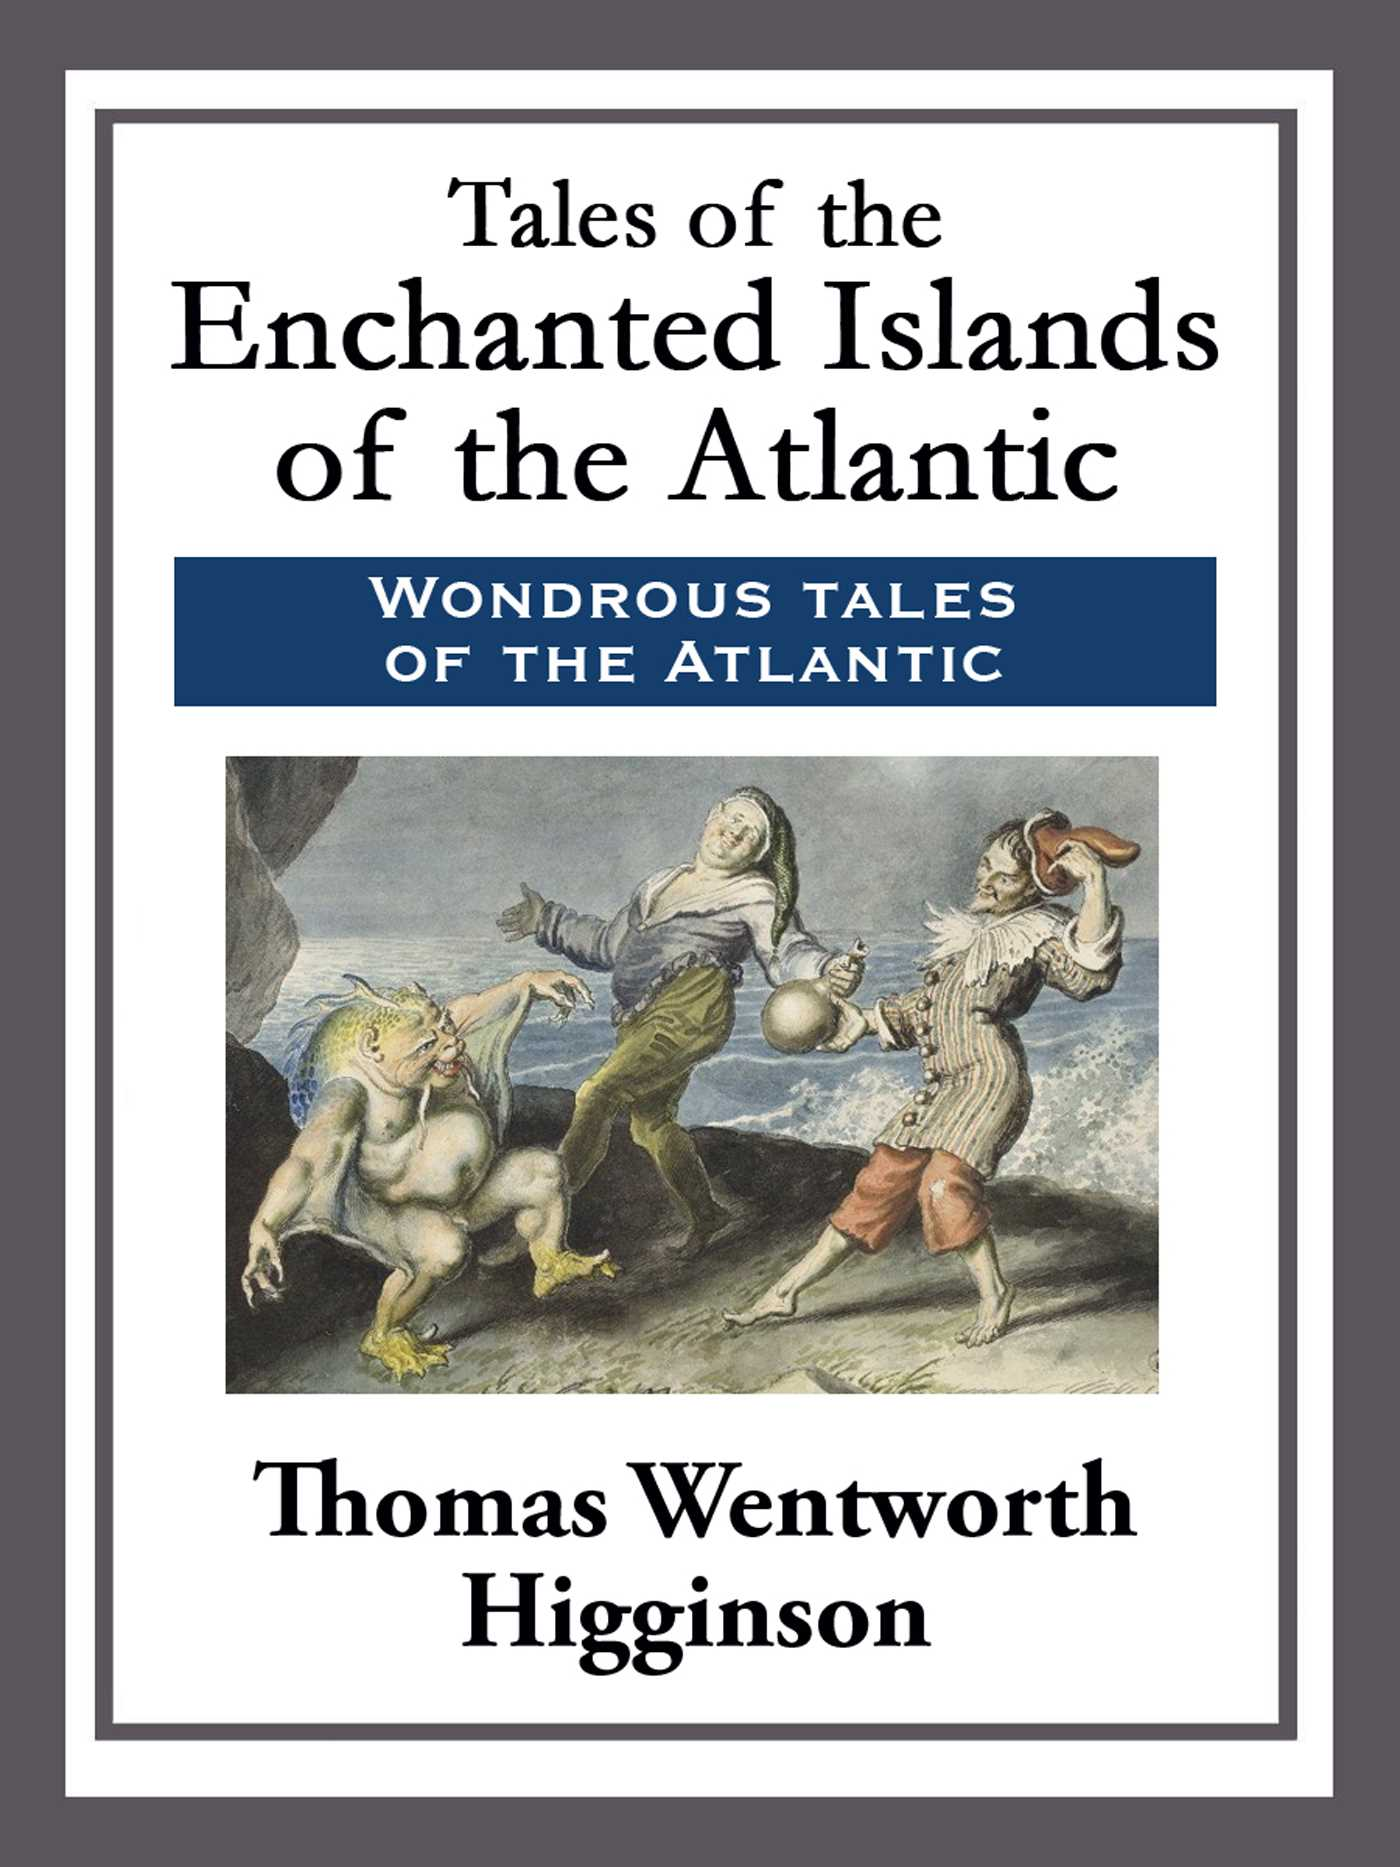 Tales of the enchanted islands of the atlantic 9781682991923 hr